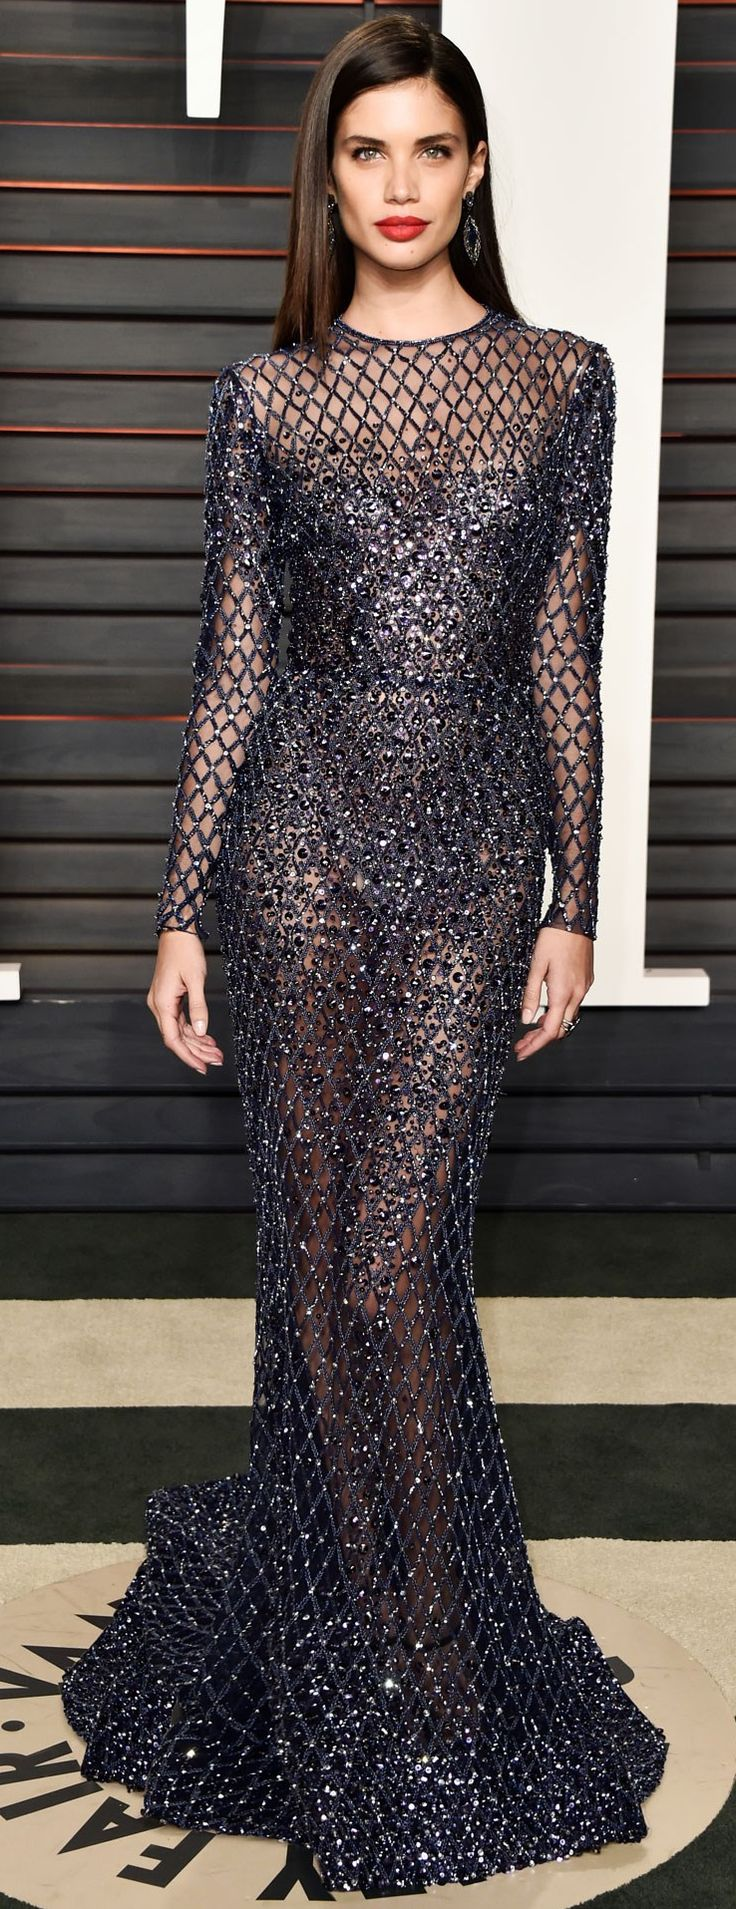 Sara Sampaio in ZUHAIR MURAD COUTURE Fall Winter 15/16 2016 Vanity Fair Oscar Party.